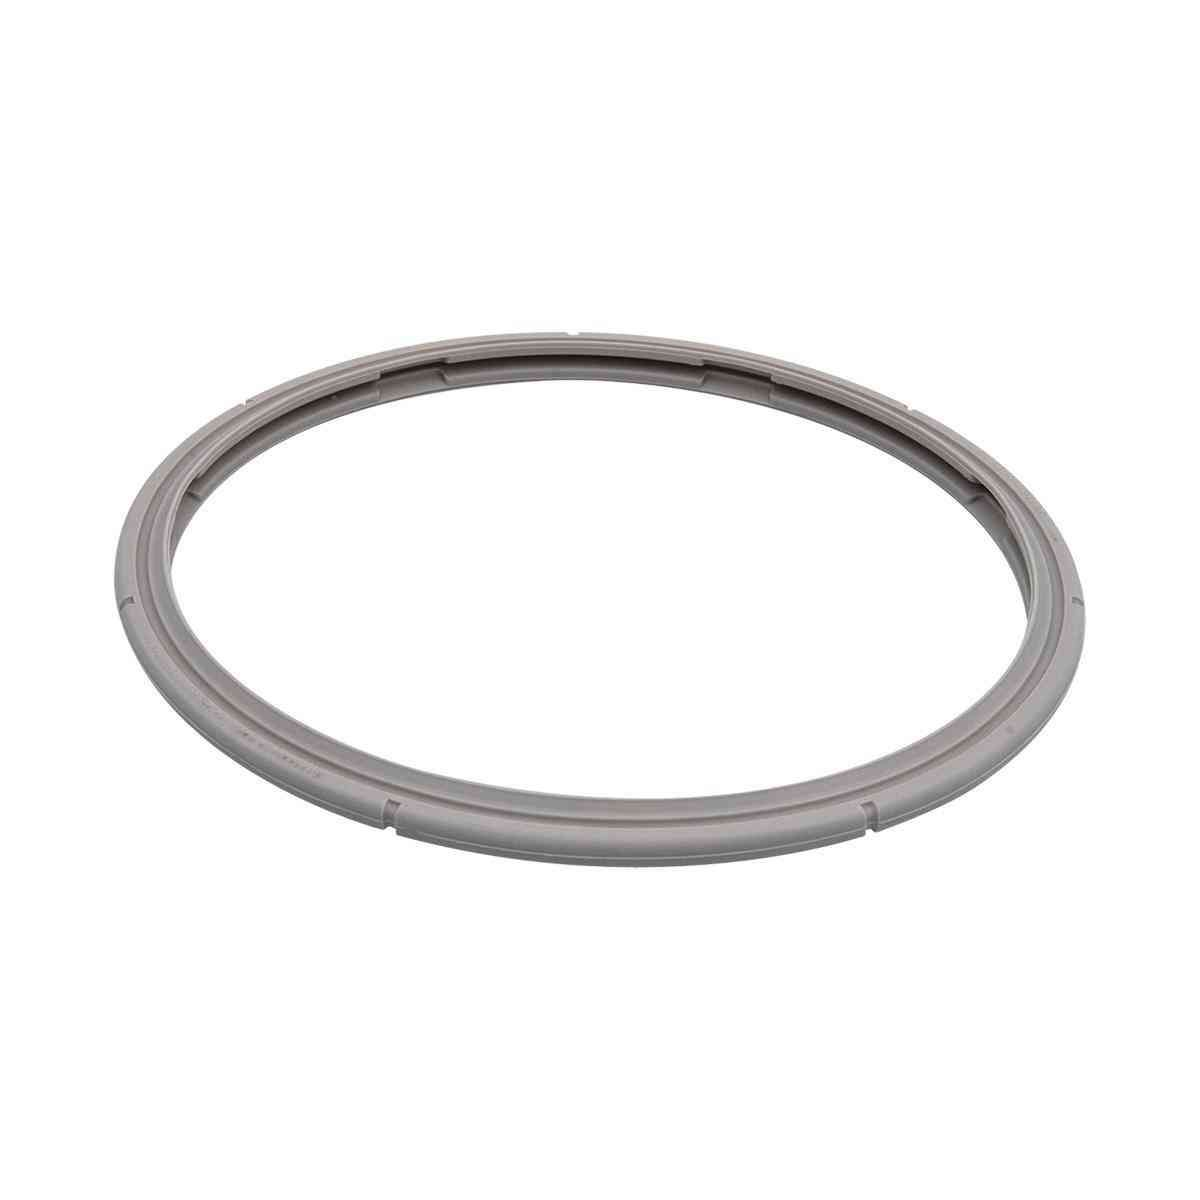 Rubber / Silicone Gasket 7.1in